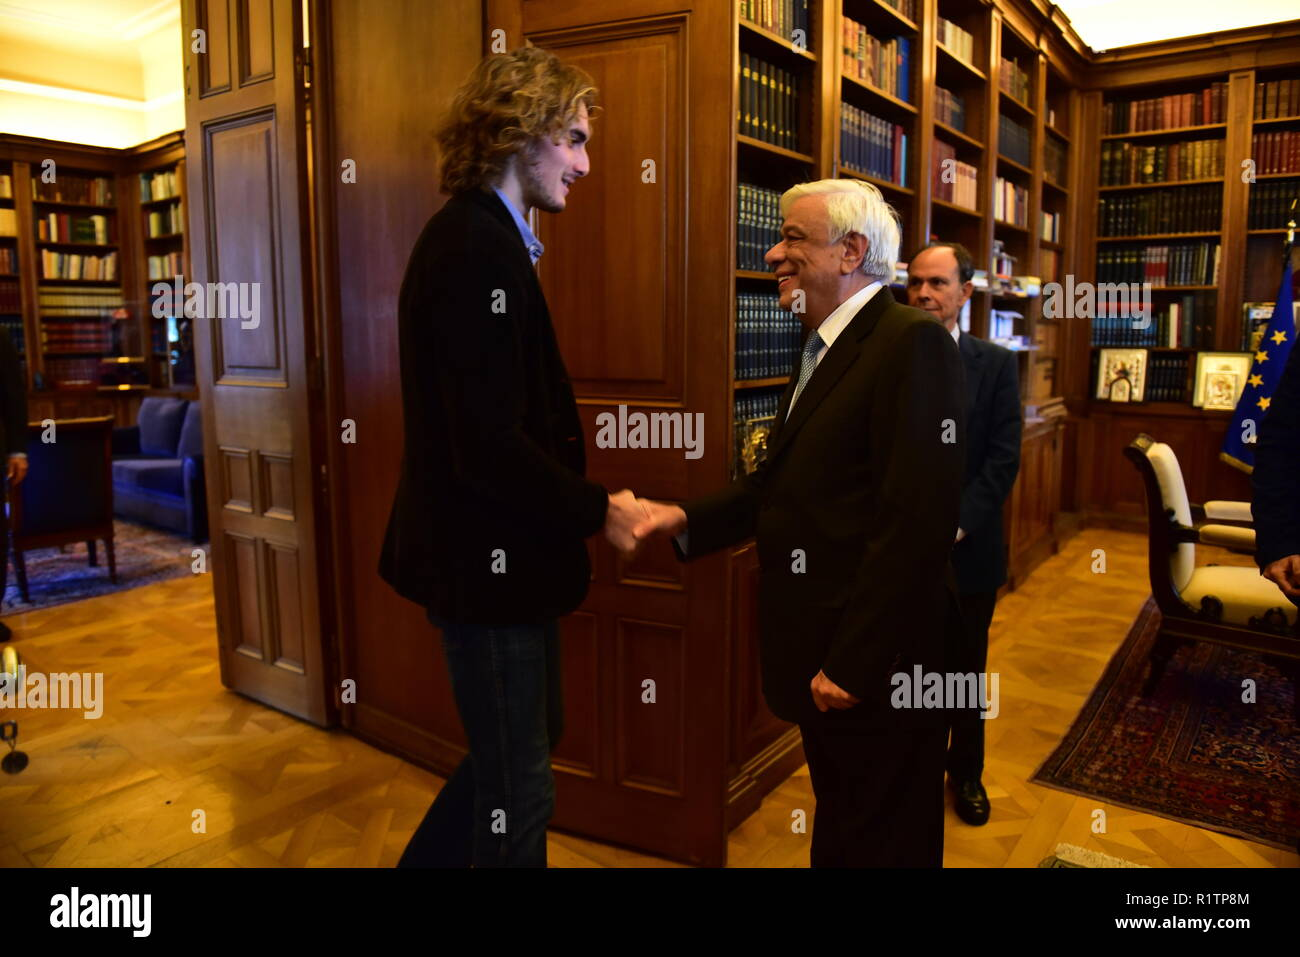 Athens Greece 14th Nov 2018 Handshake Of President Of Hellenic Republic Prokopis Pavlopoulos Right And Of Stefanos Tsitsipas Left In The Presidential Mansion Credit Dimitrios Karvountzis Pacific Press Alamy Live News Stock Photo